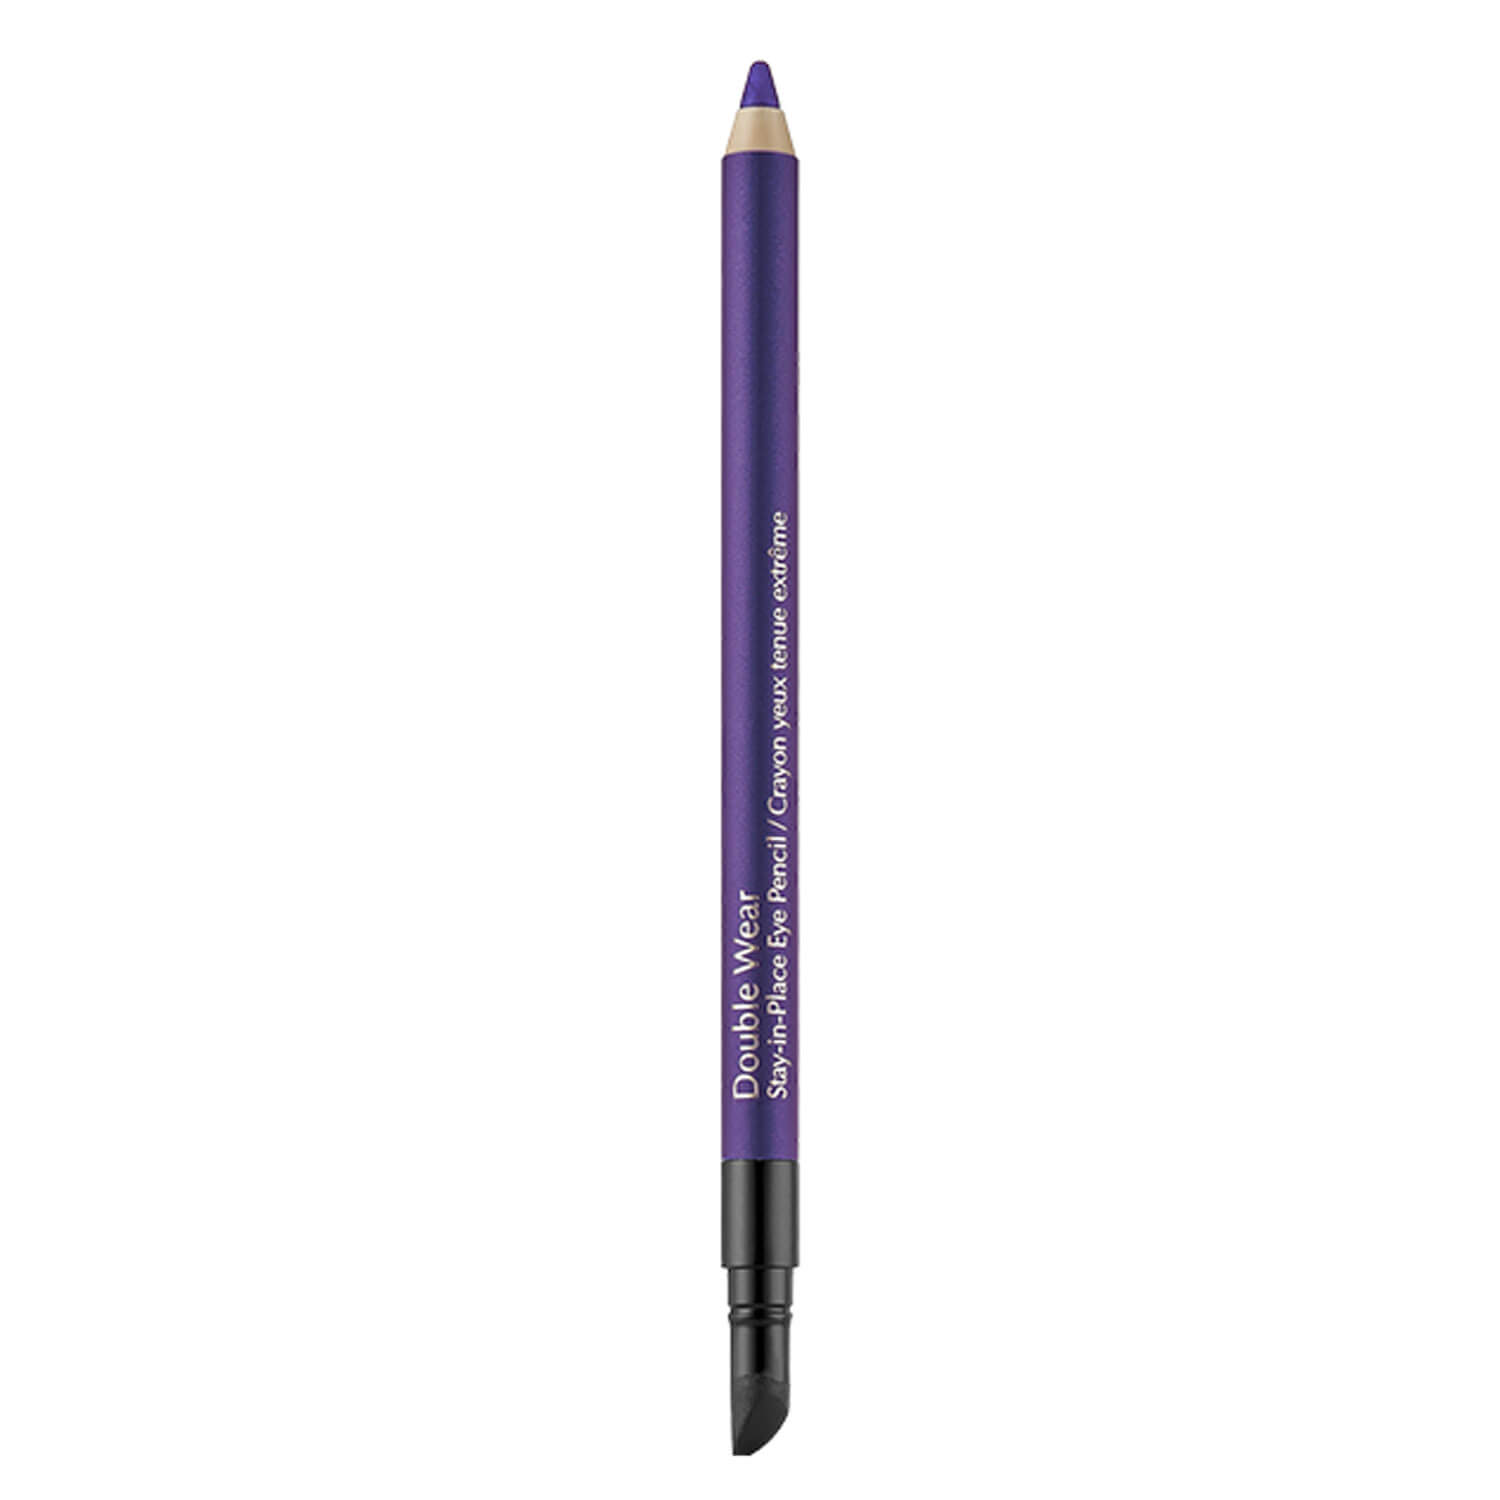 Double Wear - Stay-in-Place Eye Pencil Night Violet